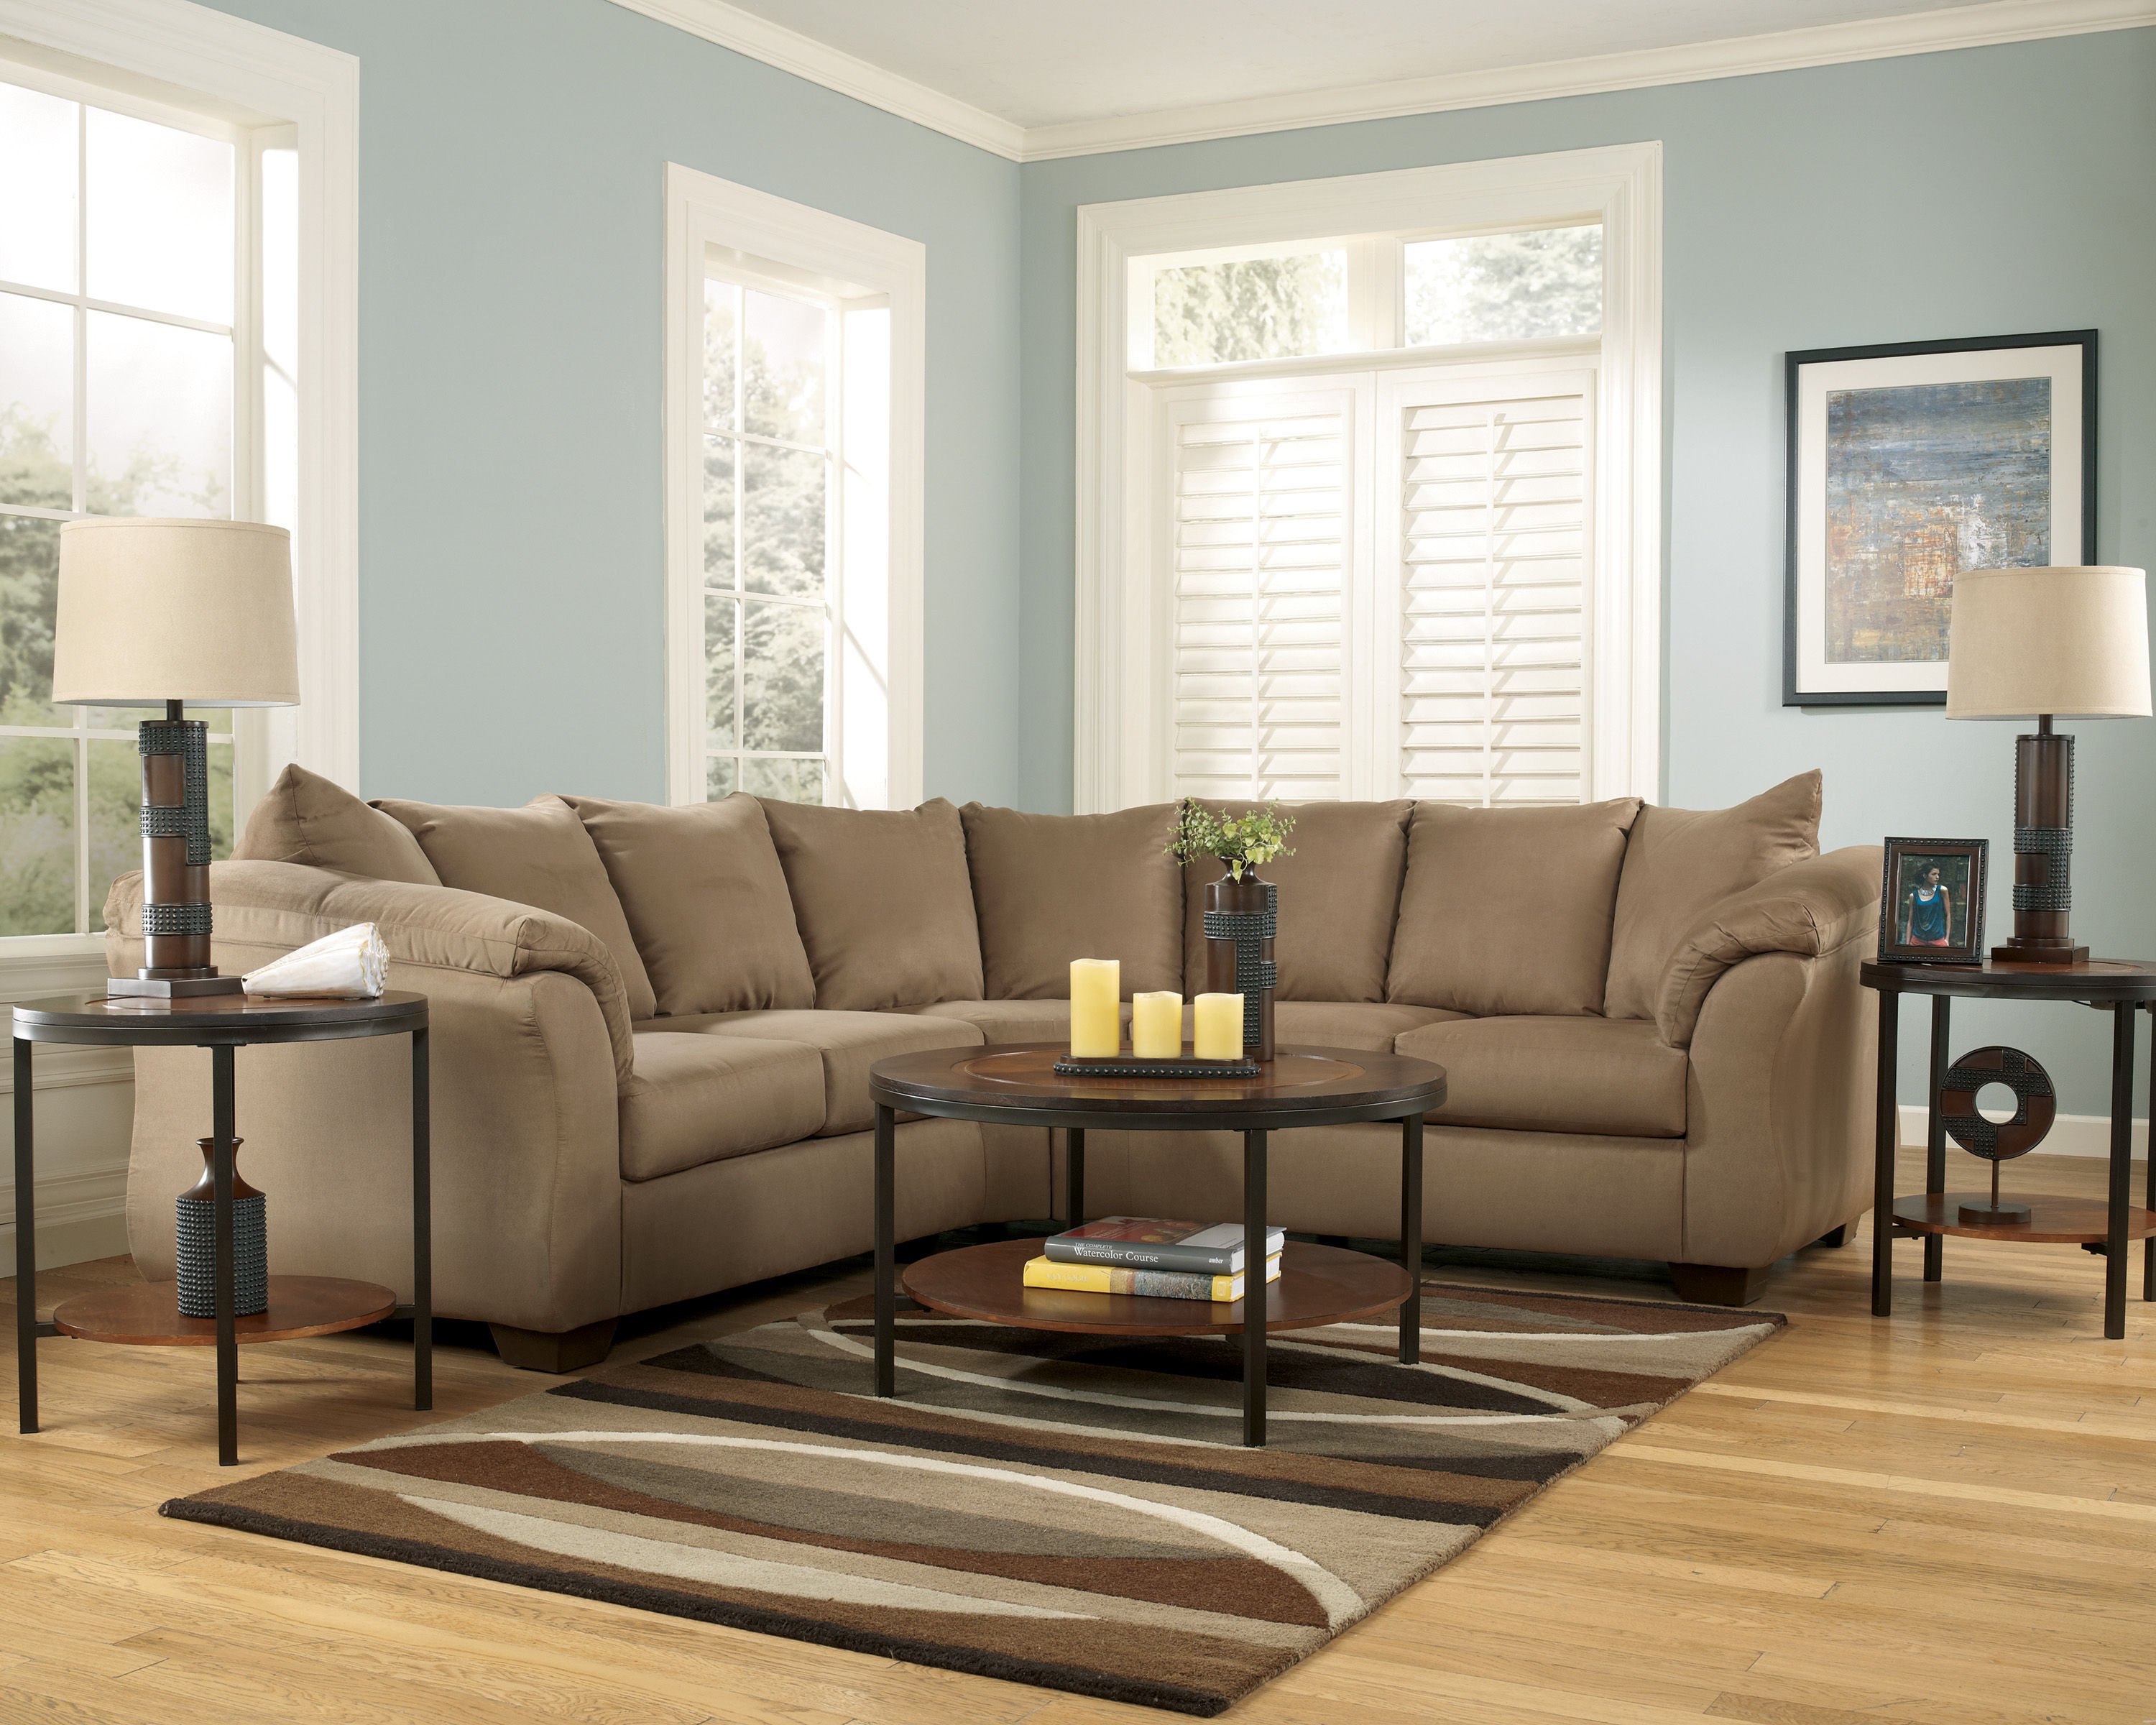 Ashley furniture darcy mocha sectional the classy home for Ashley mocha sectional with chaise